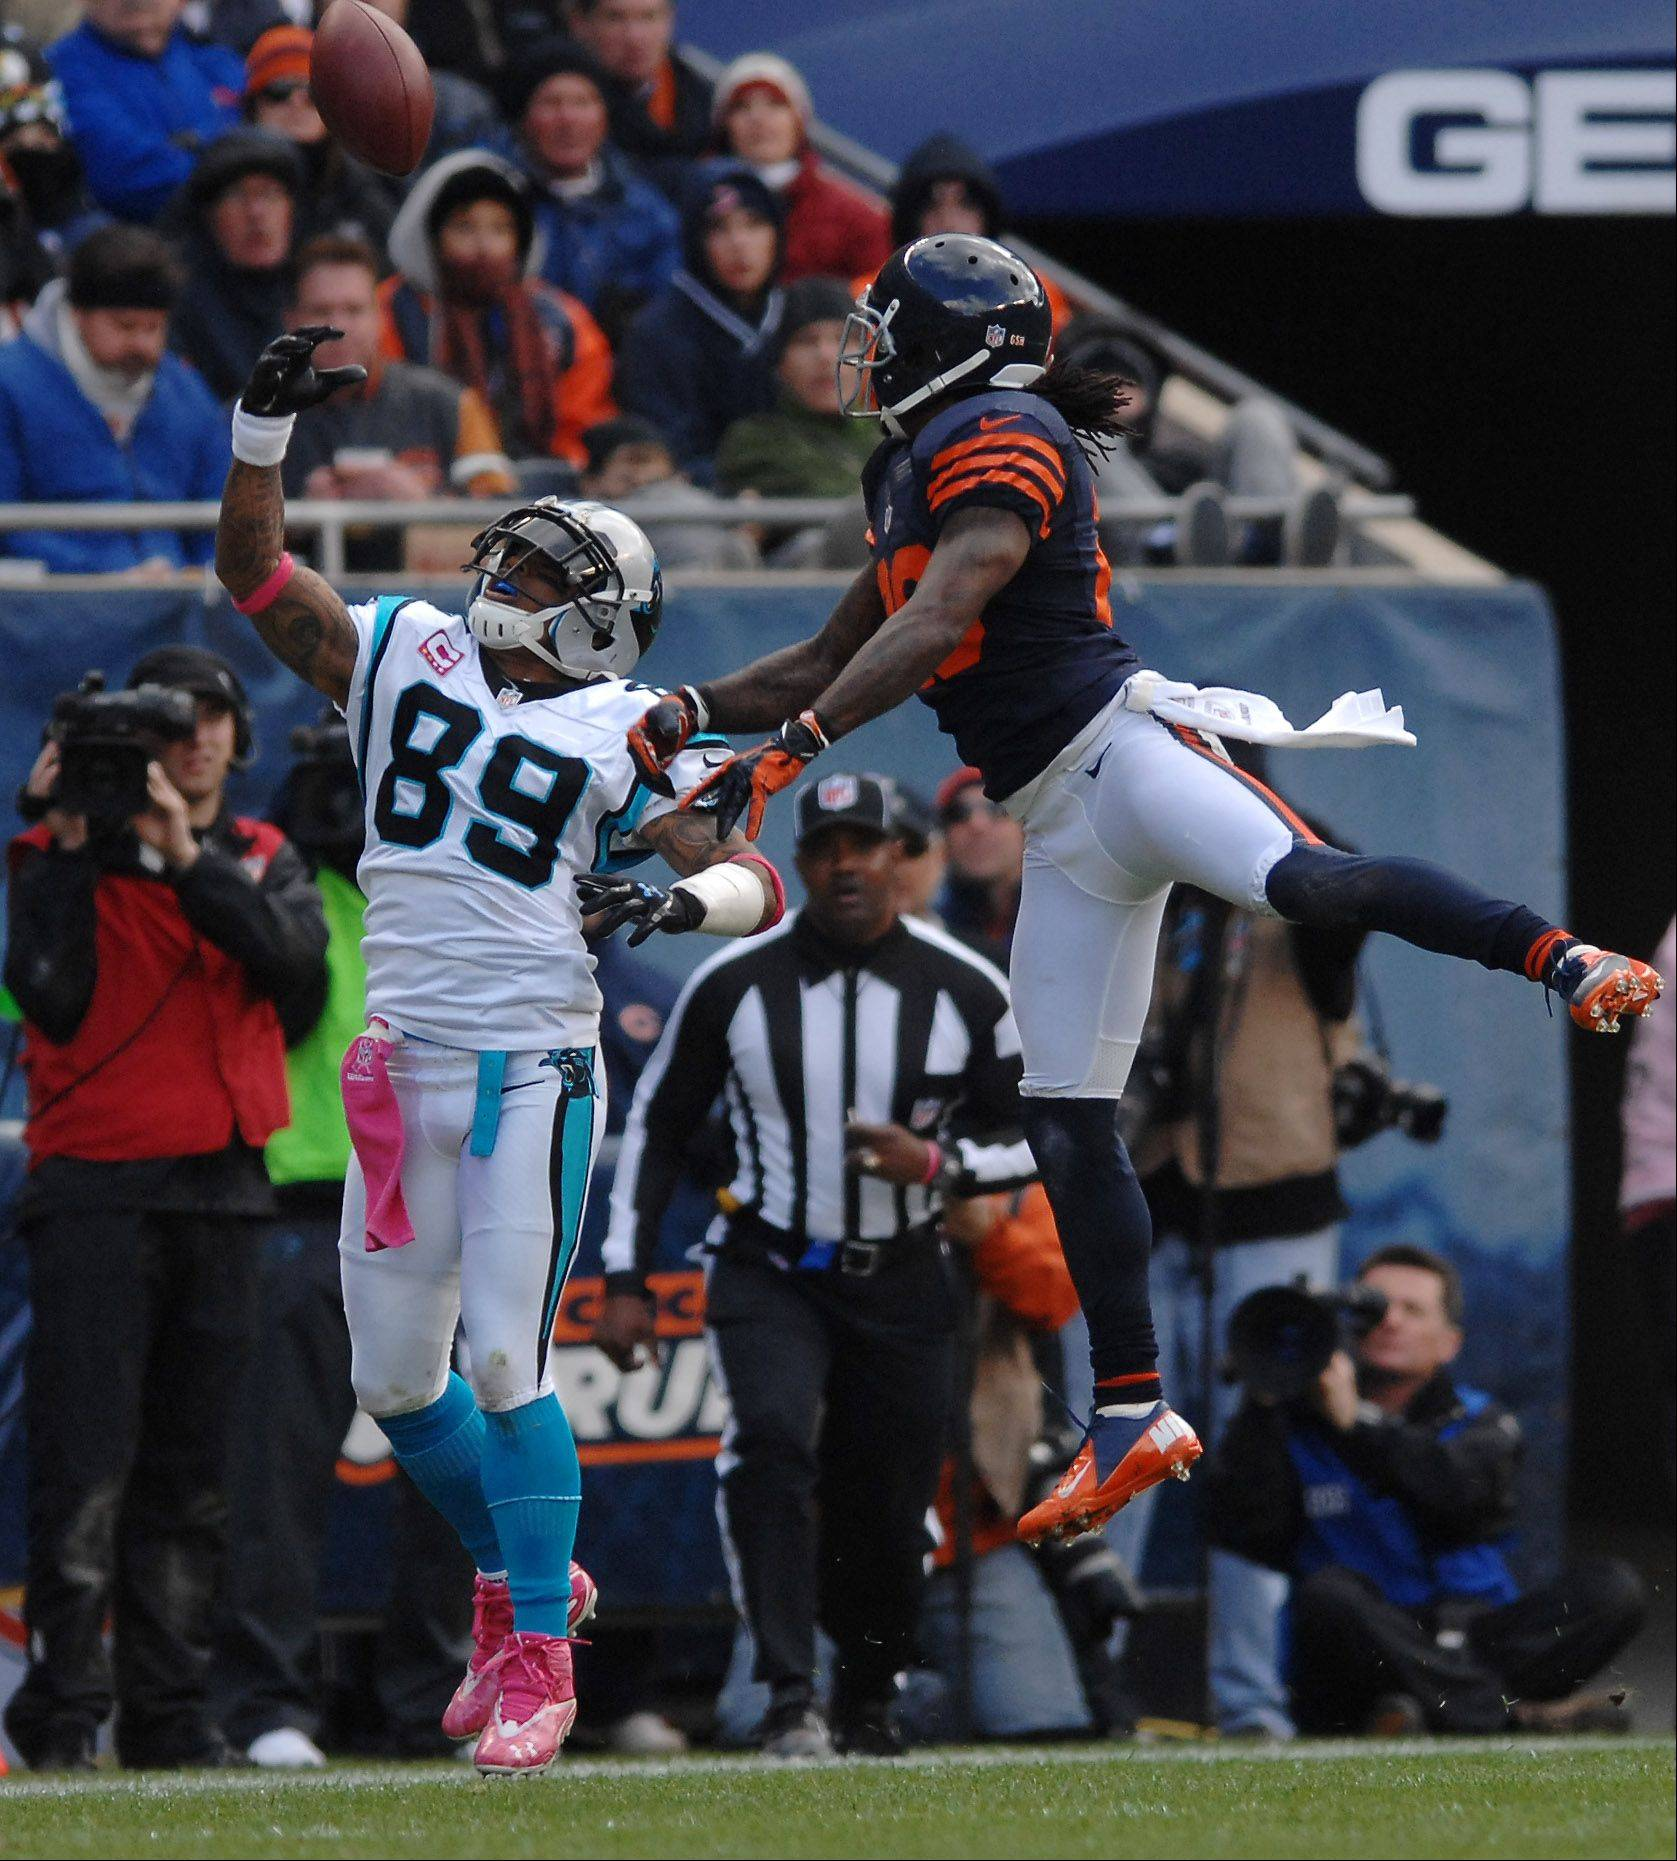 Chicago Bears cornerback Tim Jennings (26) breaks up a pass intended for Carolina Panthers wide receiver Steve Smith (89) during Sunday's game at Soldier Field in Chicago.